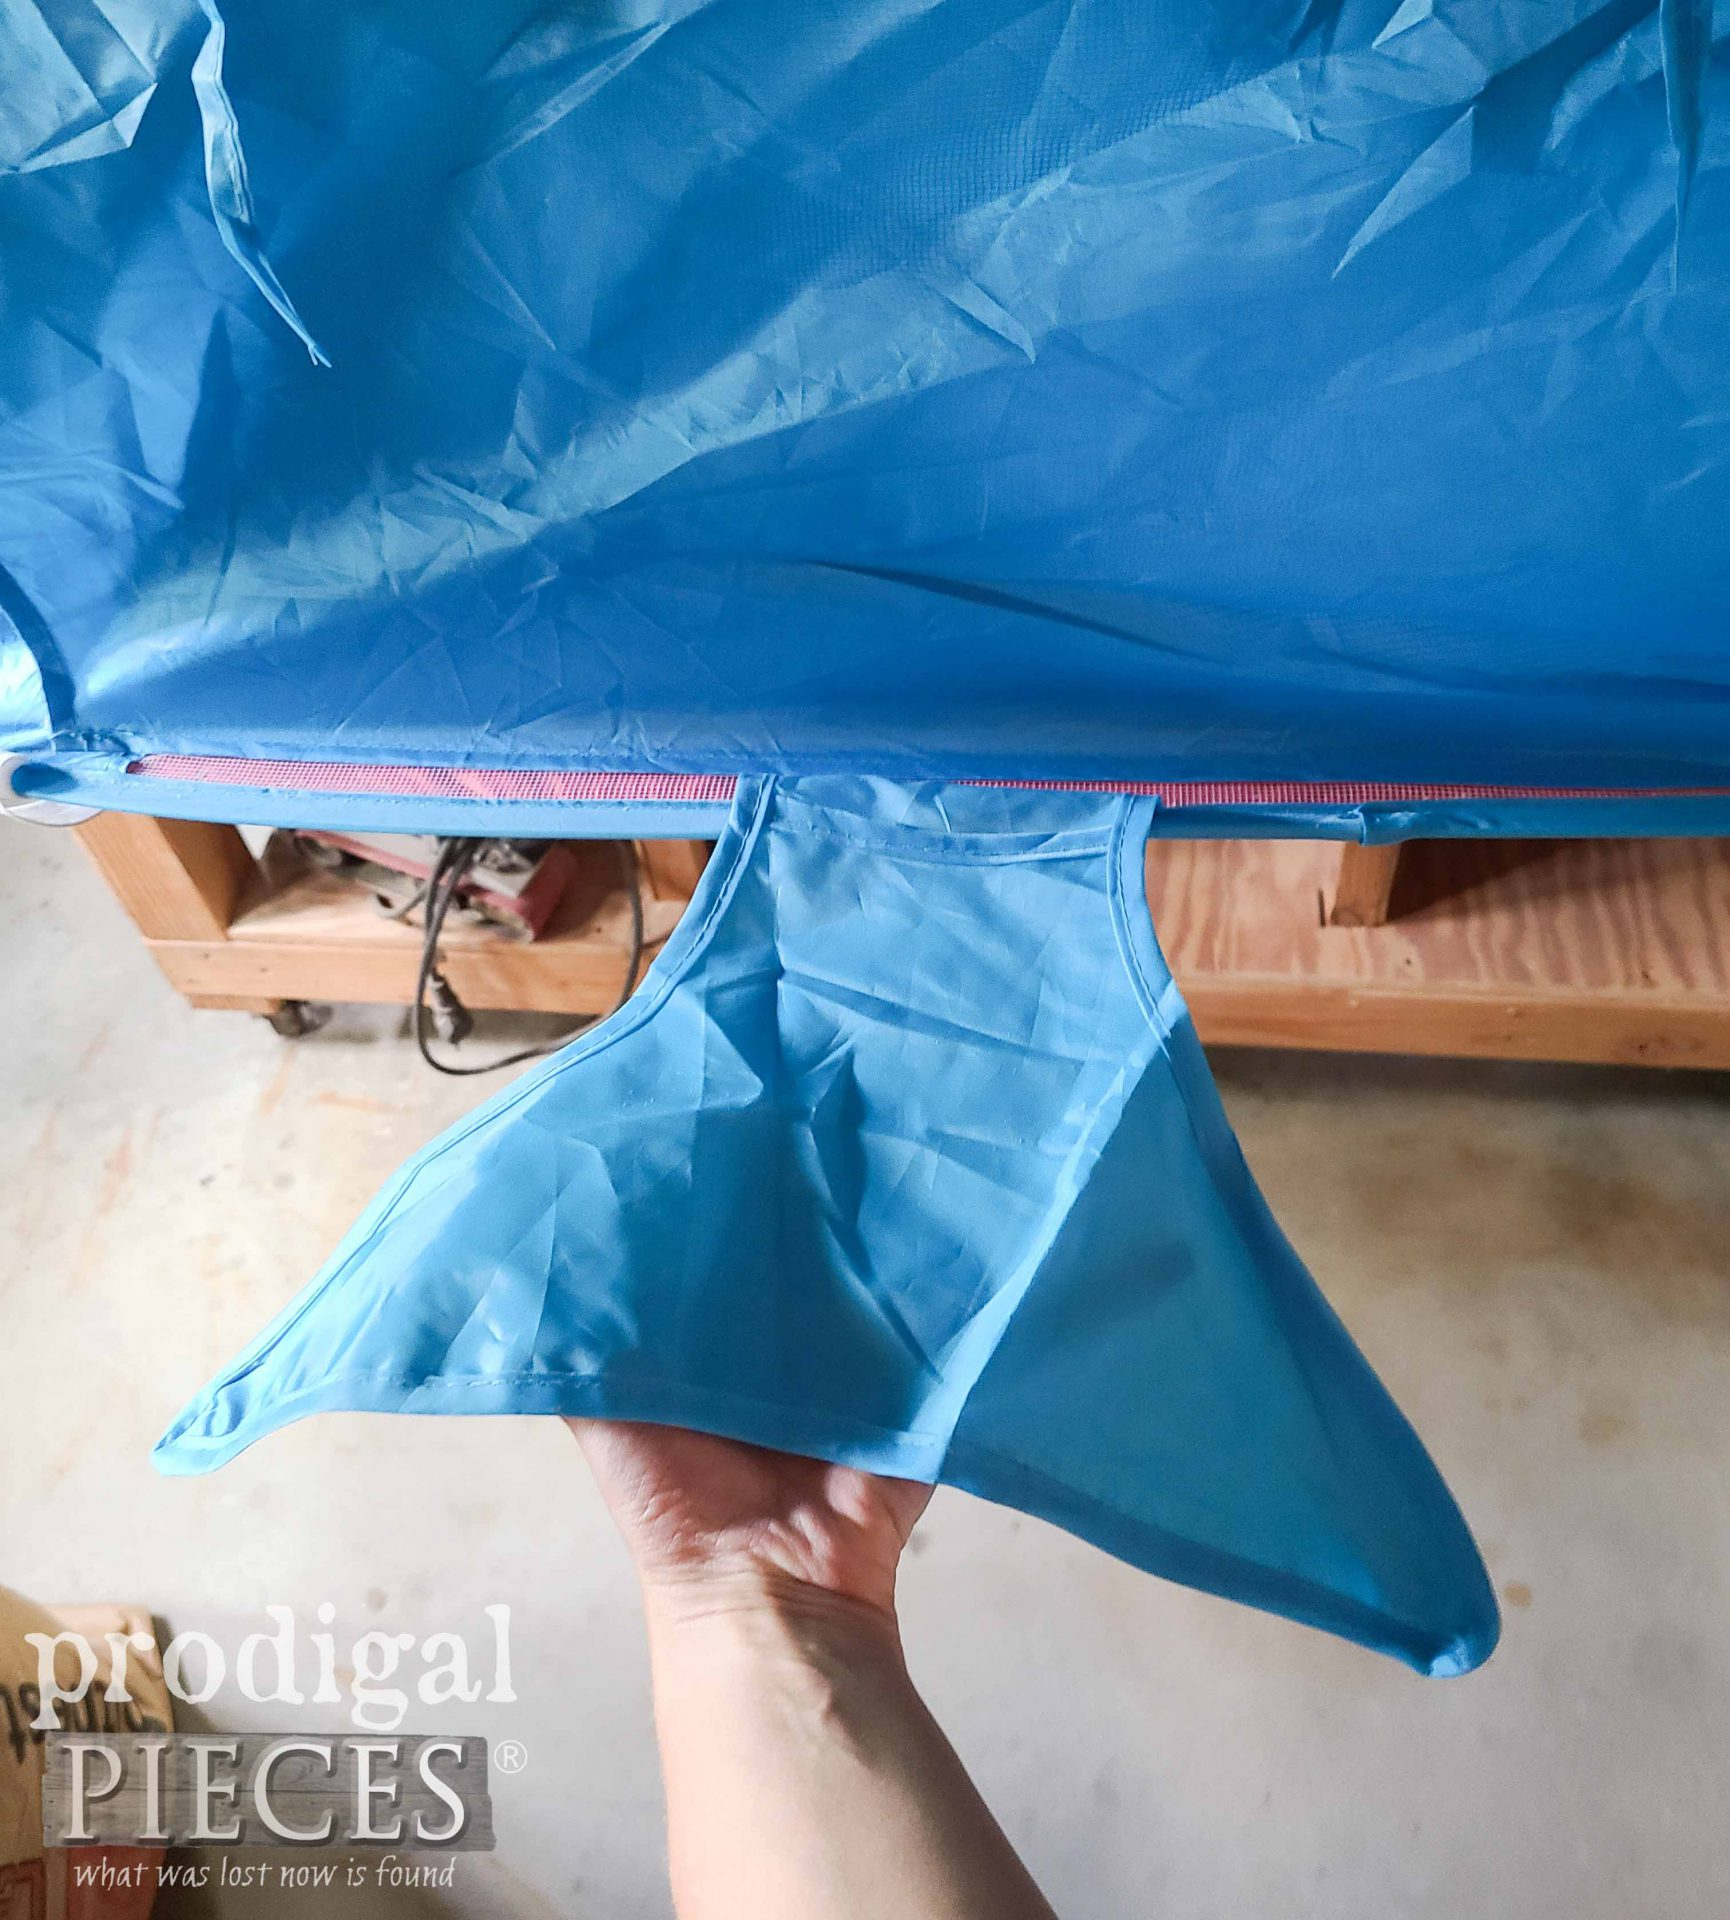 Whale Tent Tail   Miter Saw Dust Hood   Prodigal Pieces   prodigalpieces.com #prodigalpieces #diy